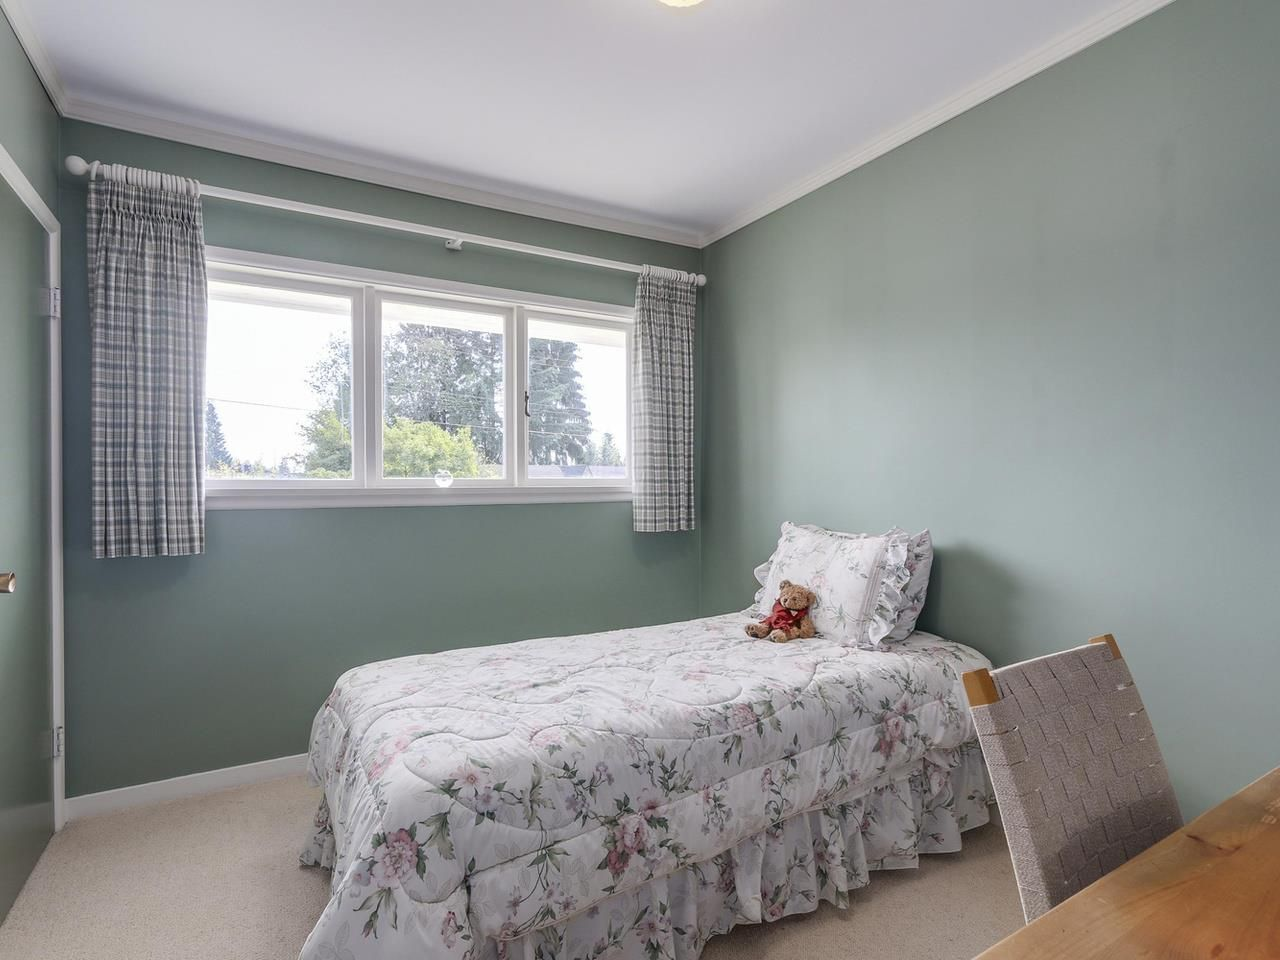 Photo 13: Photos: 587 HARRISON Avenue in Coquitlam: Coquitlam West House for sale : MLS®# R2097877